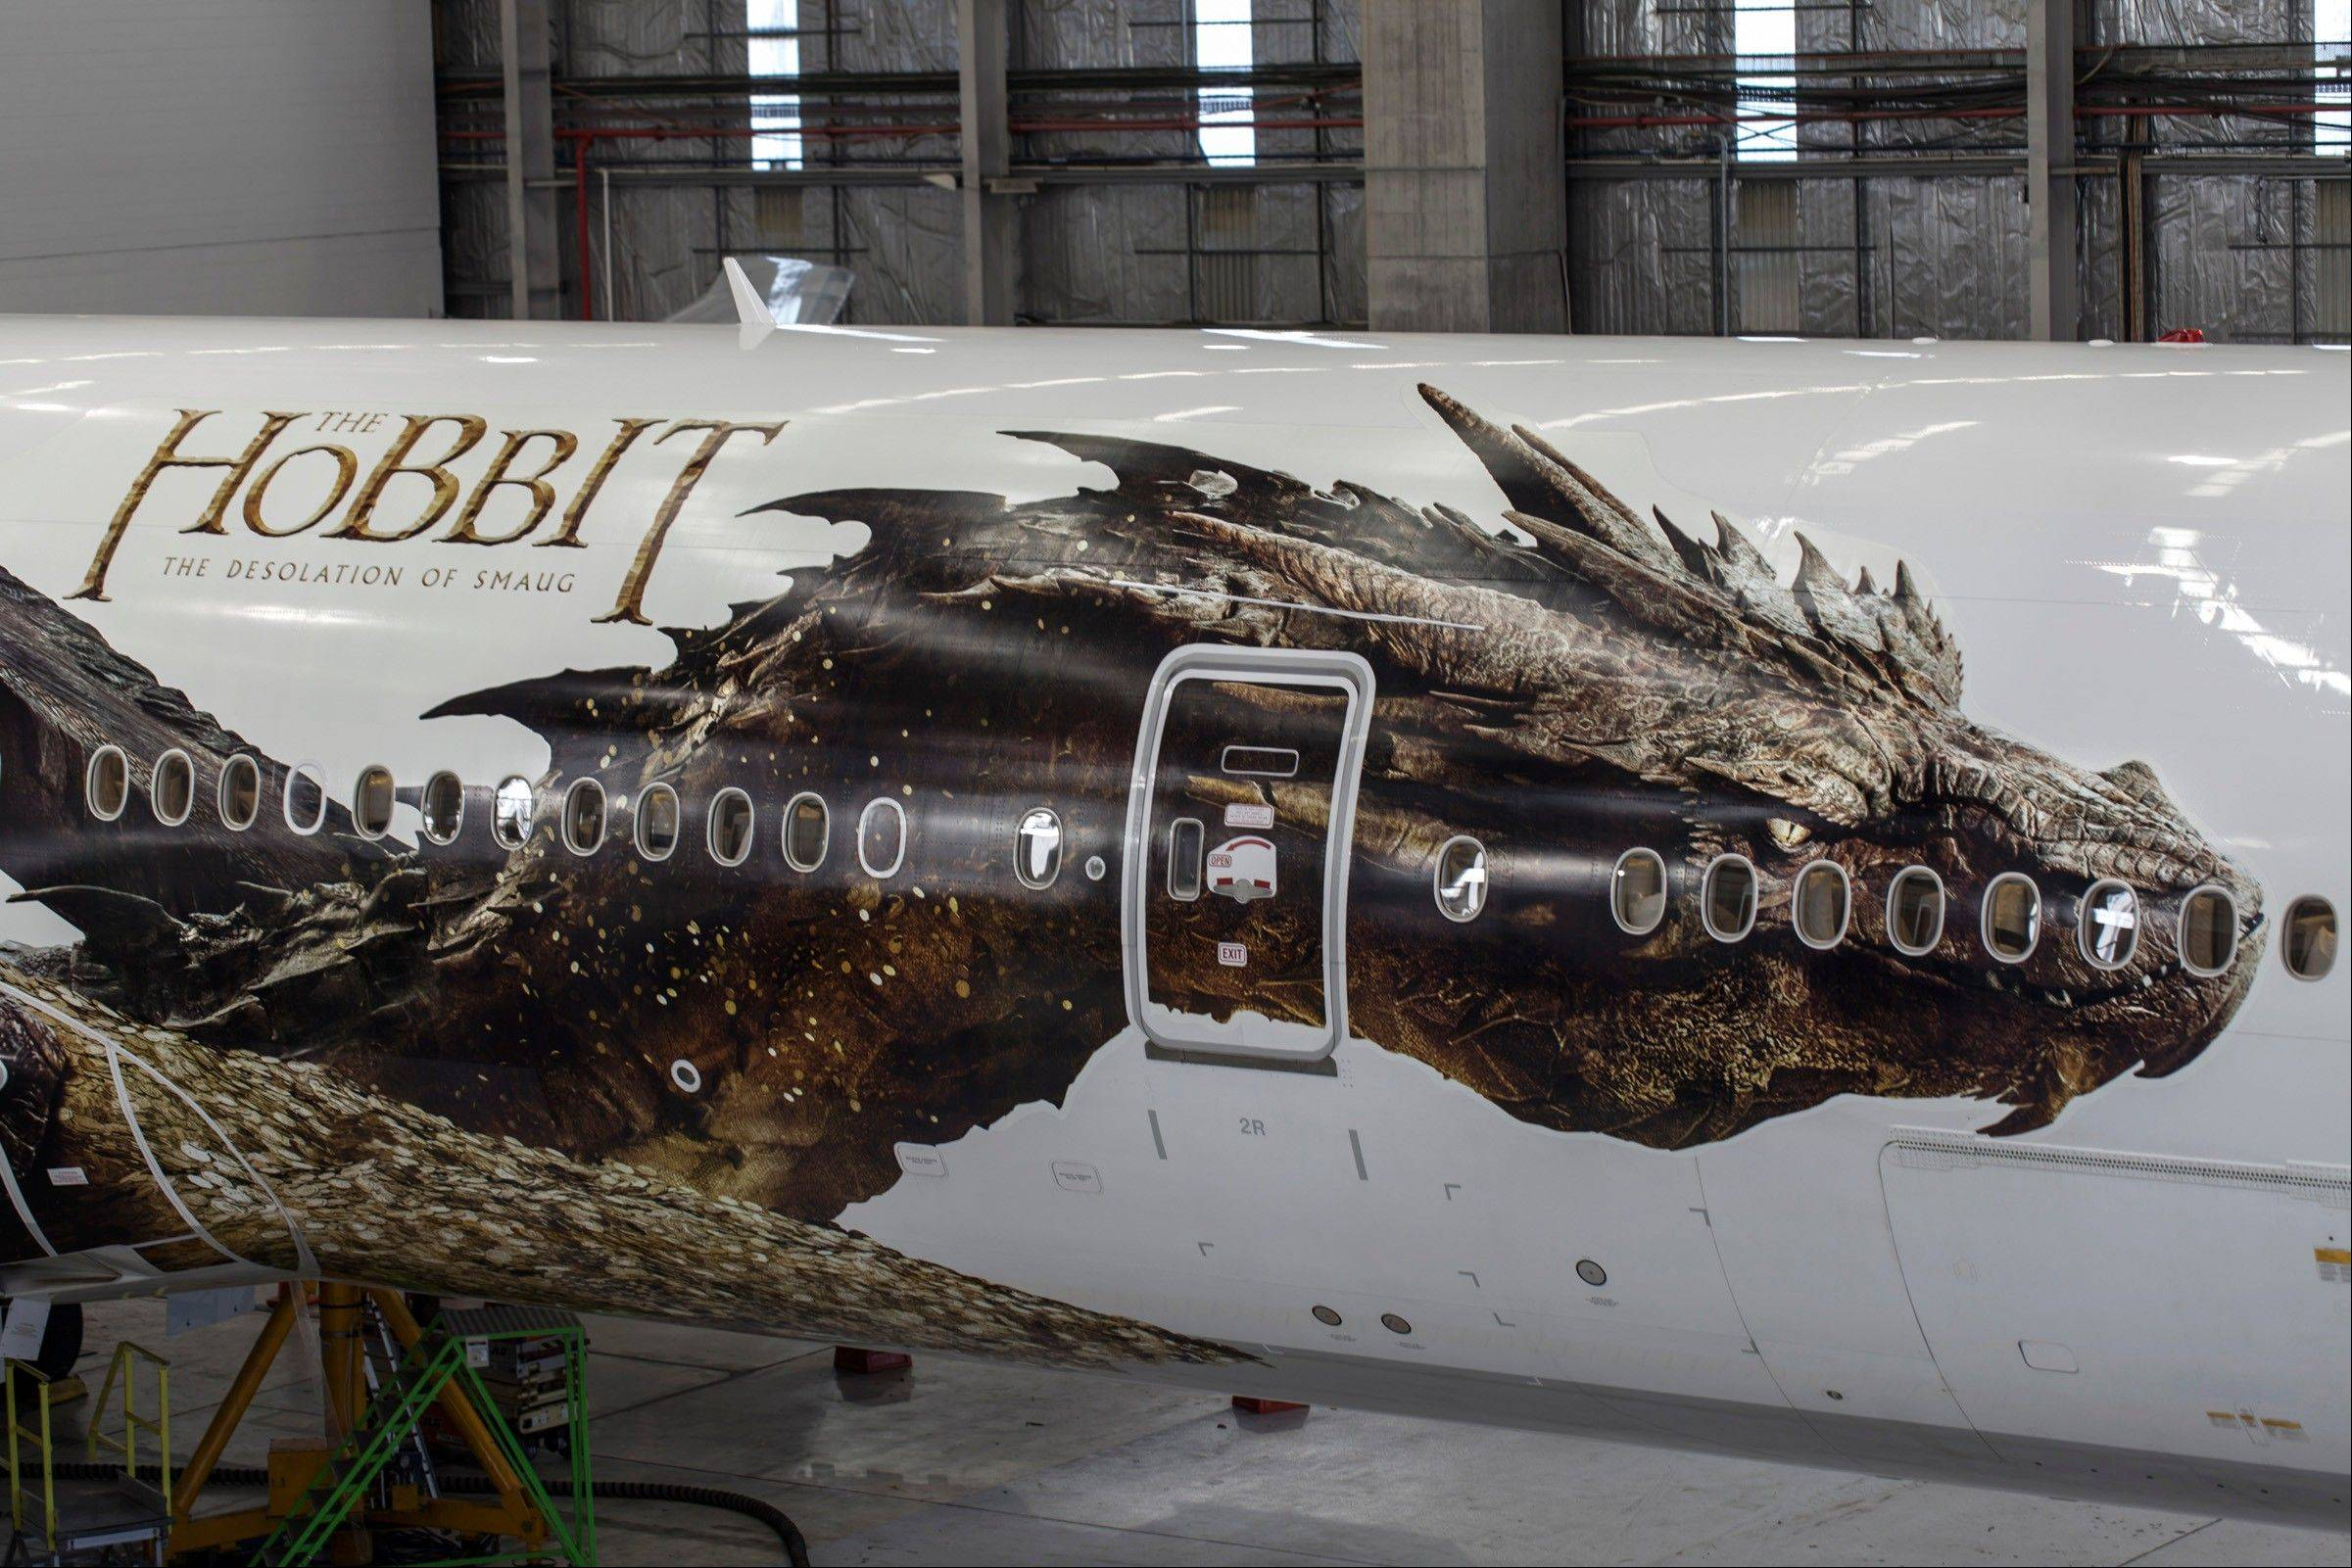 The dragon Smaug from Peter Jackson�s Hobbit trilogy is debuting on the side of an Air New Zealand plane in Auckland, New Zealand. The image was unveiled to celebrate the premiere of �The Hobbit: The Desolation of Smaug,� which screens Monday in Los Angeles.